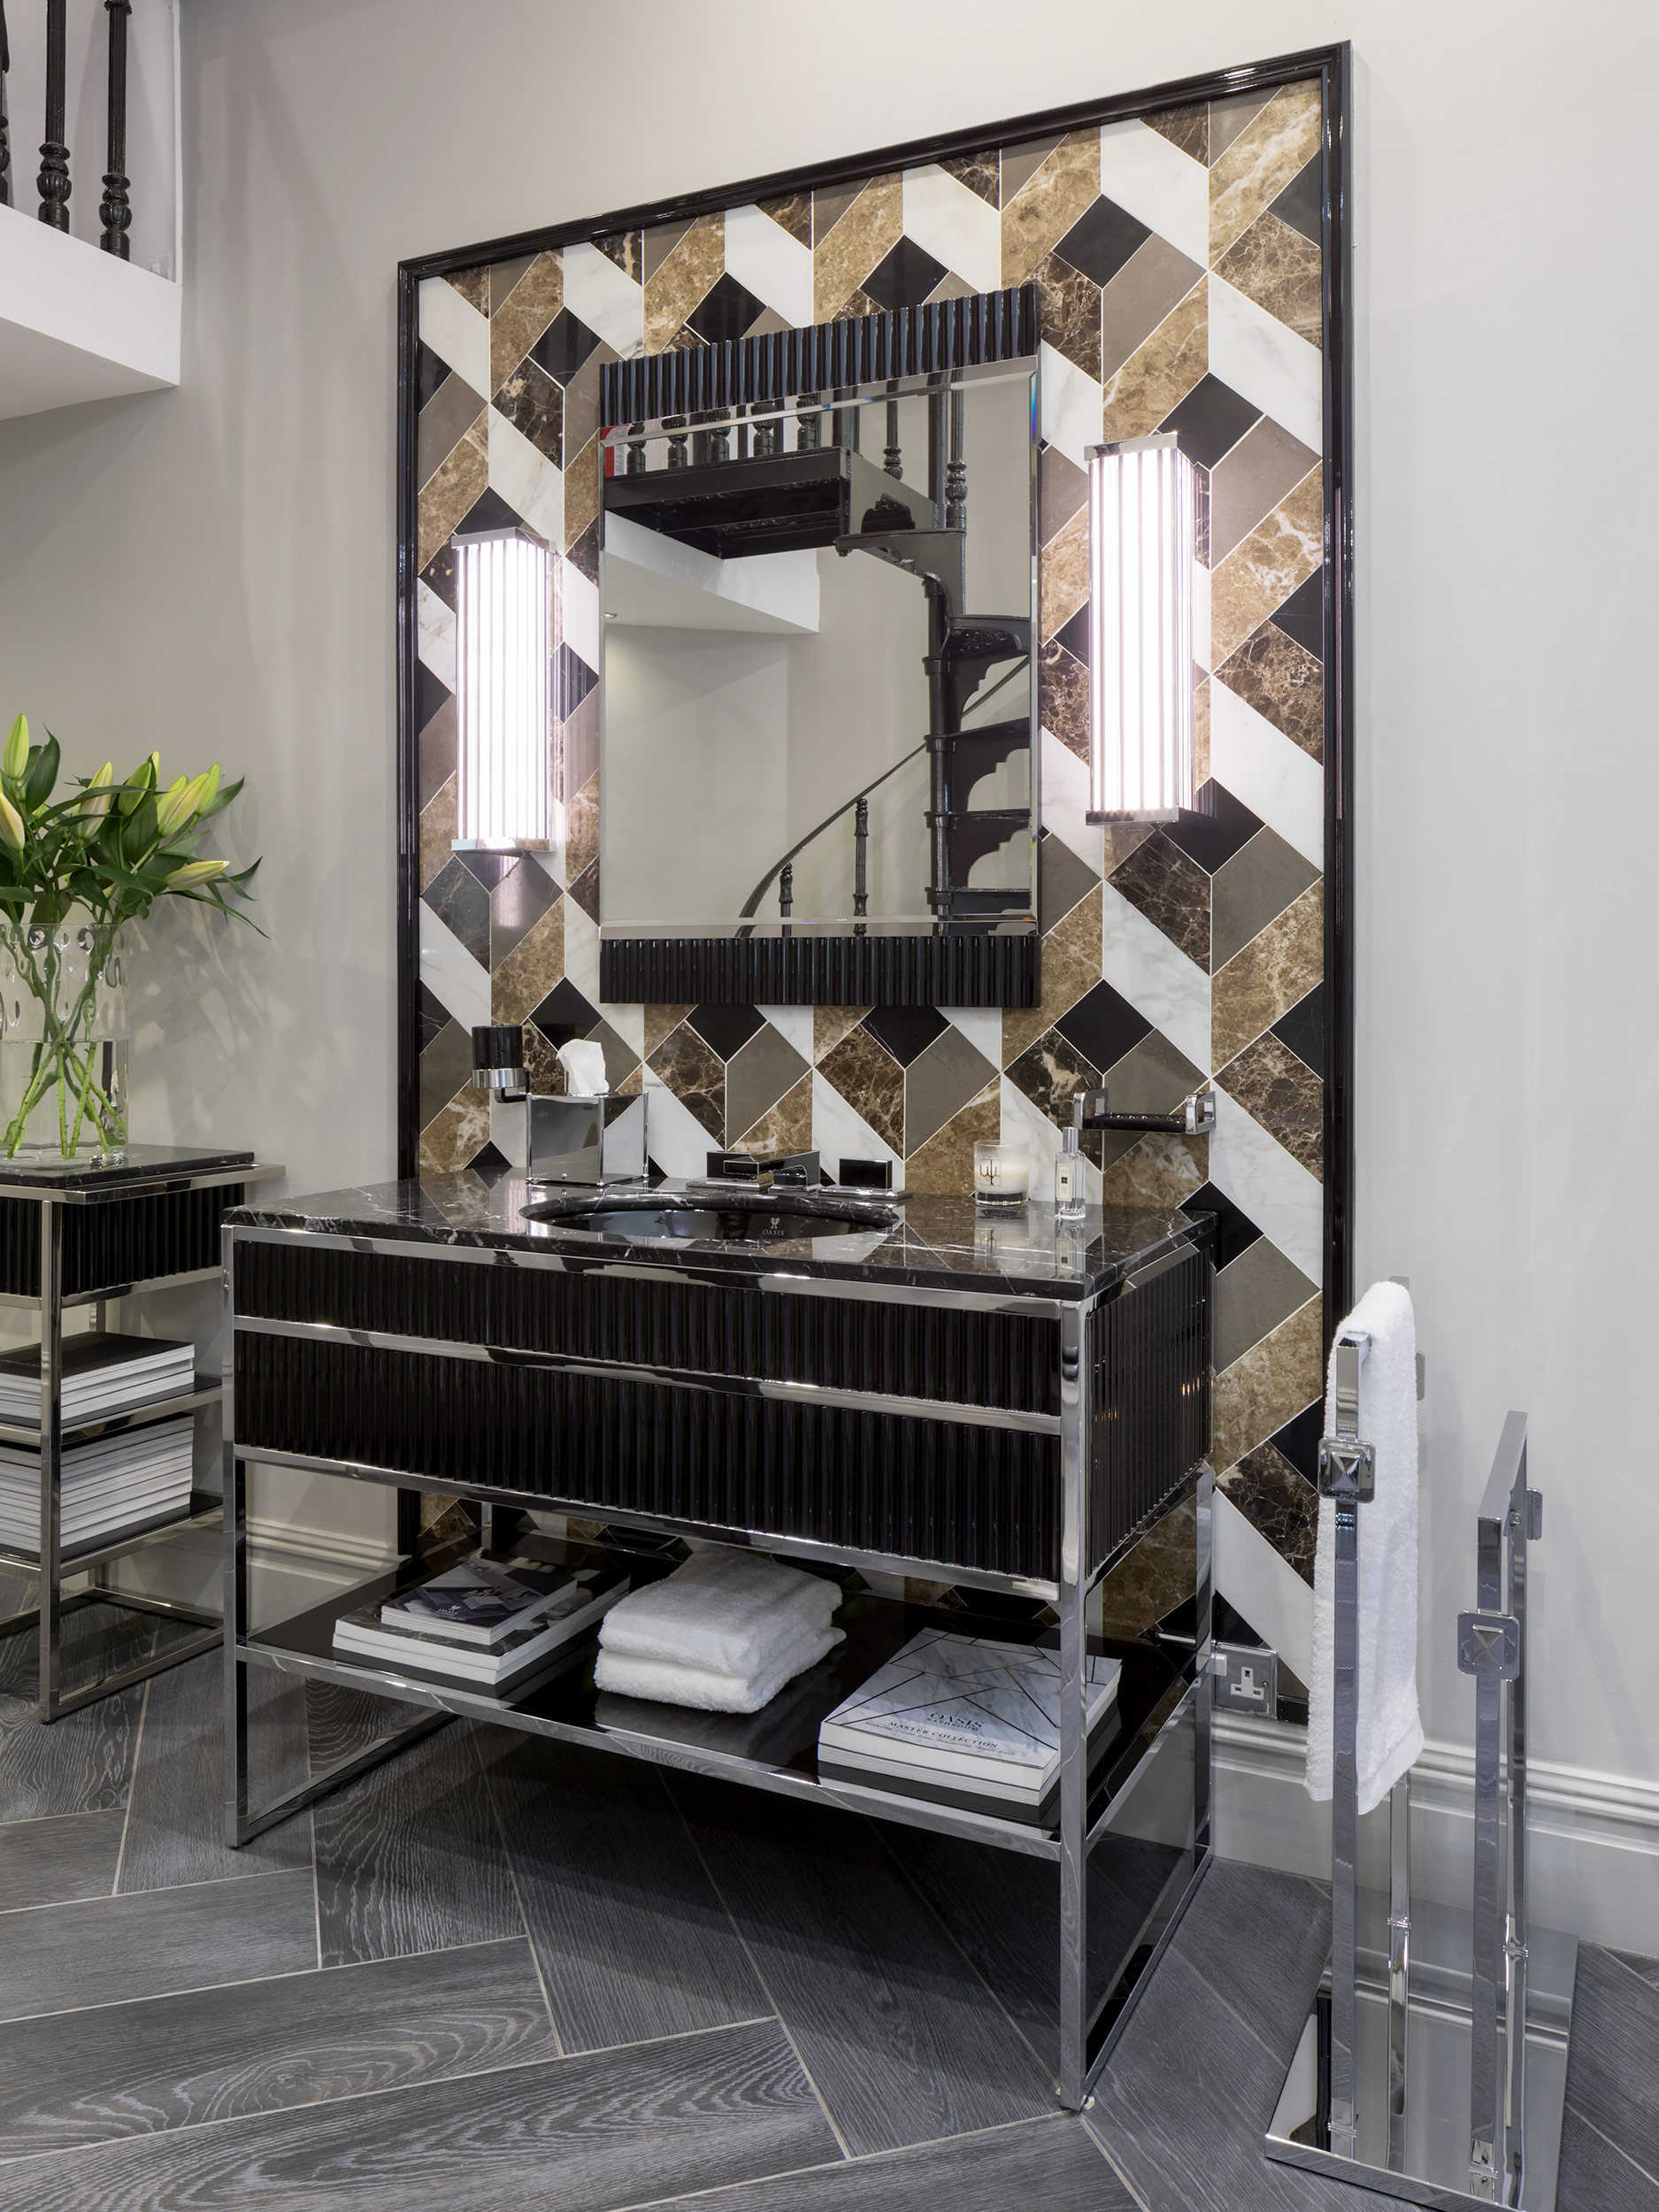 West One Bathrooms Knightsbridge Showroom Thurloe Place 3b